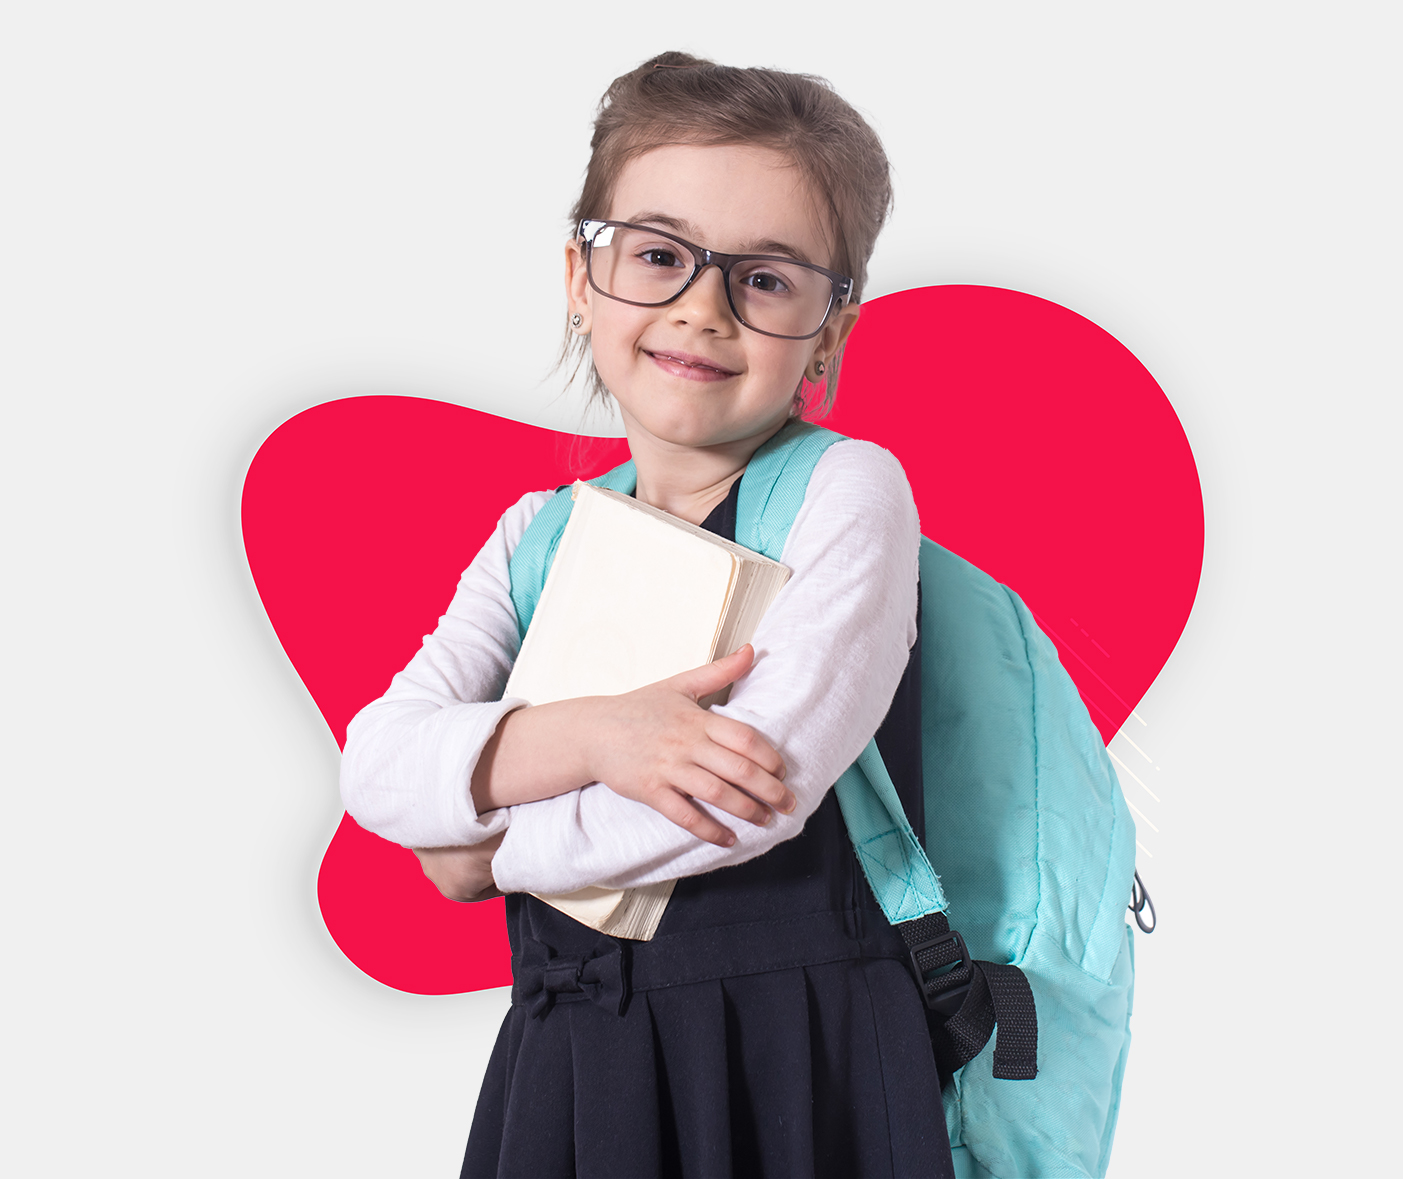 girl-elementary-school-student-with-backpack-book